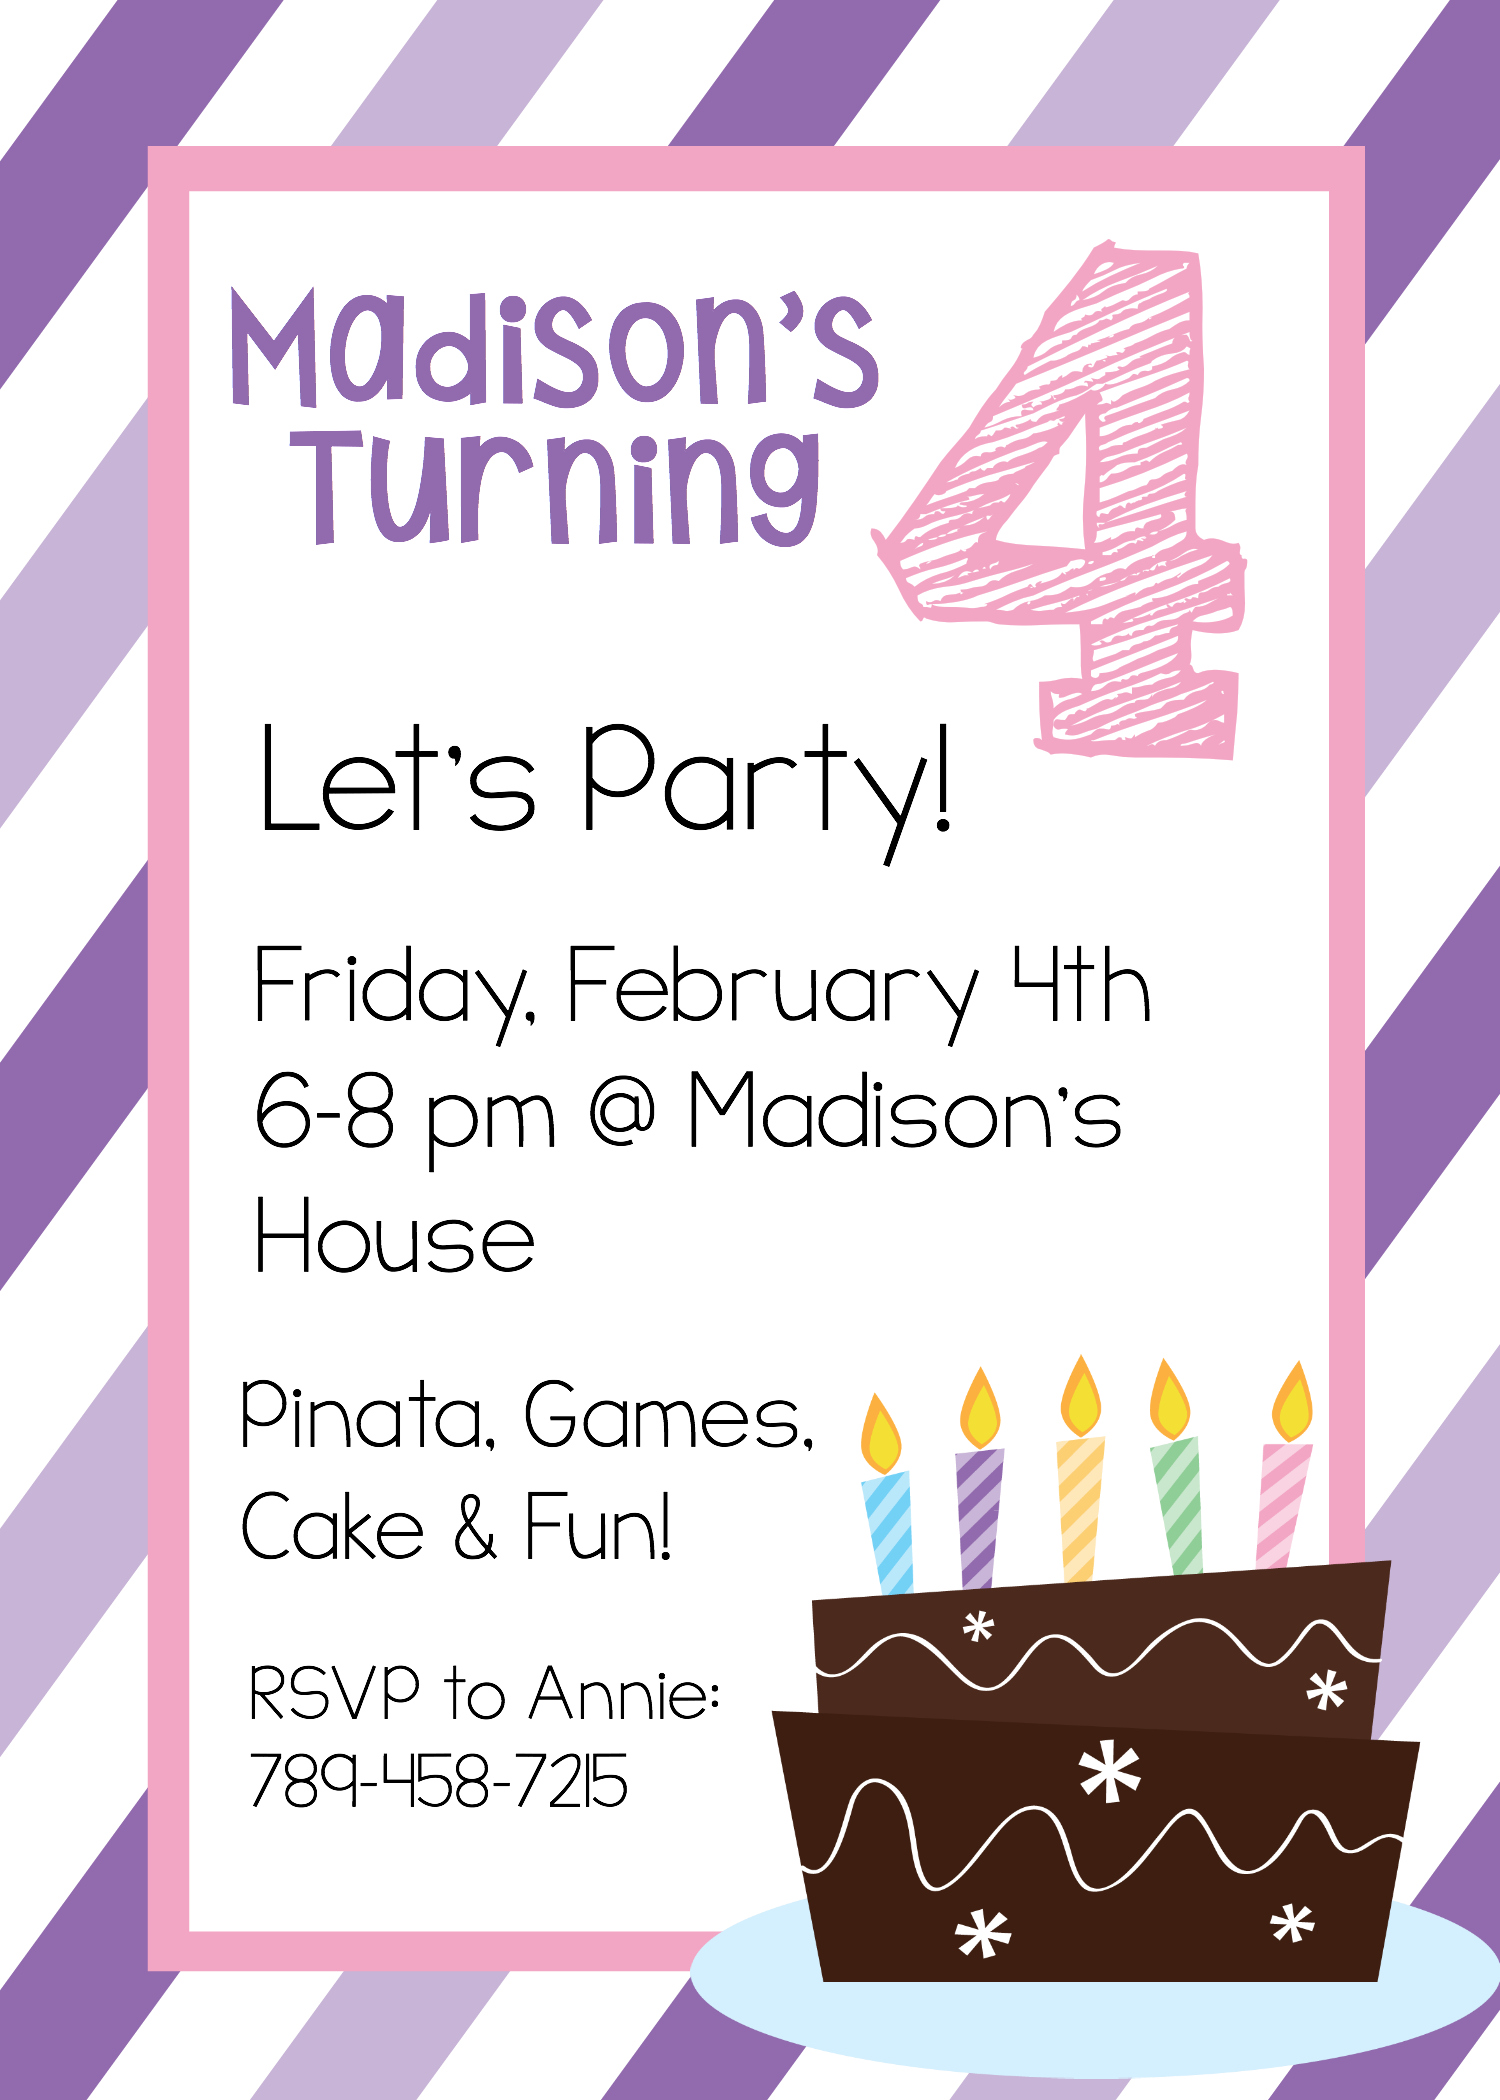 free printable 21st birthday party invitation templates ; 3Rd-Birthday-Party-Invitations-combined-with-your-creativity-will-make-this-looks-awesome-13